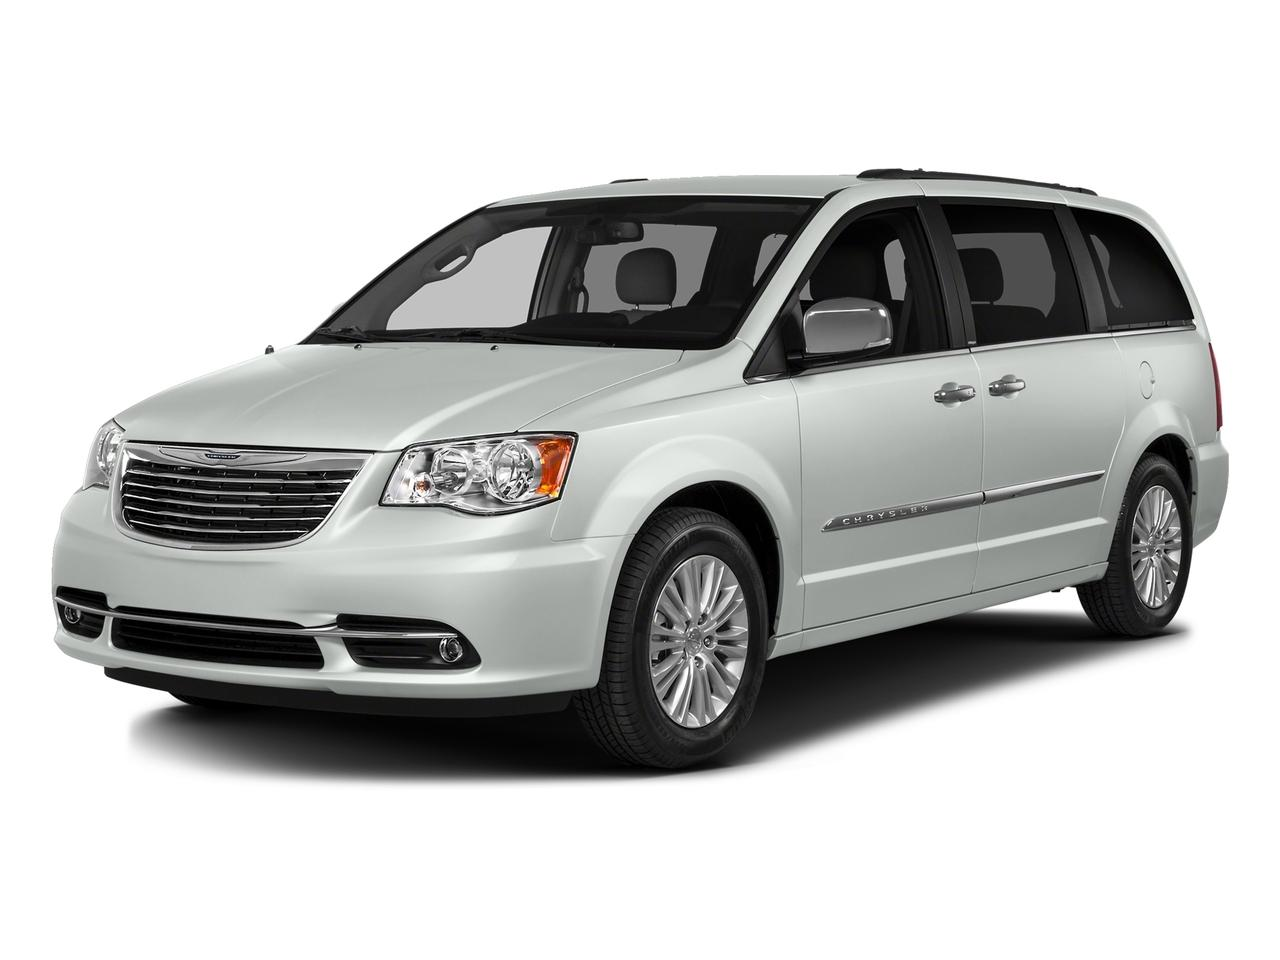 2016 Chrysler Town & Country Vehicle Photo in CHARLESTON, SC 29407